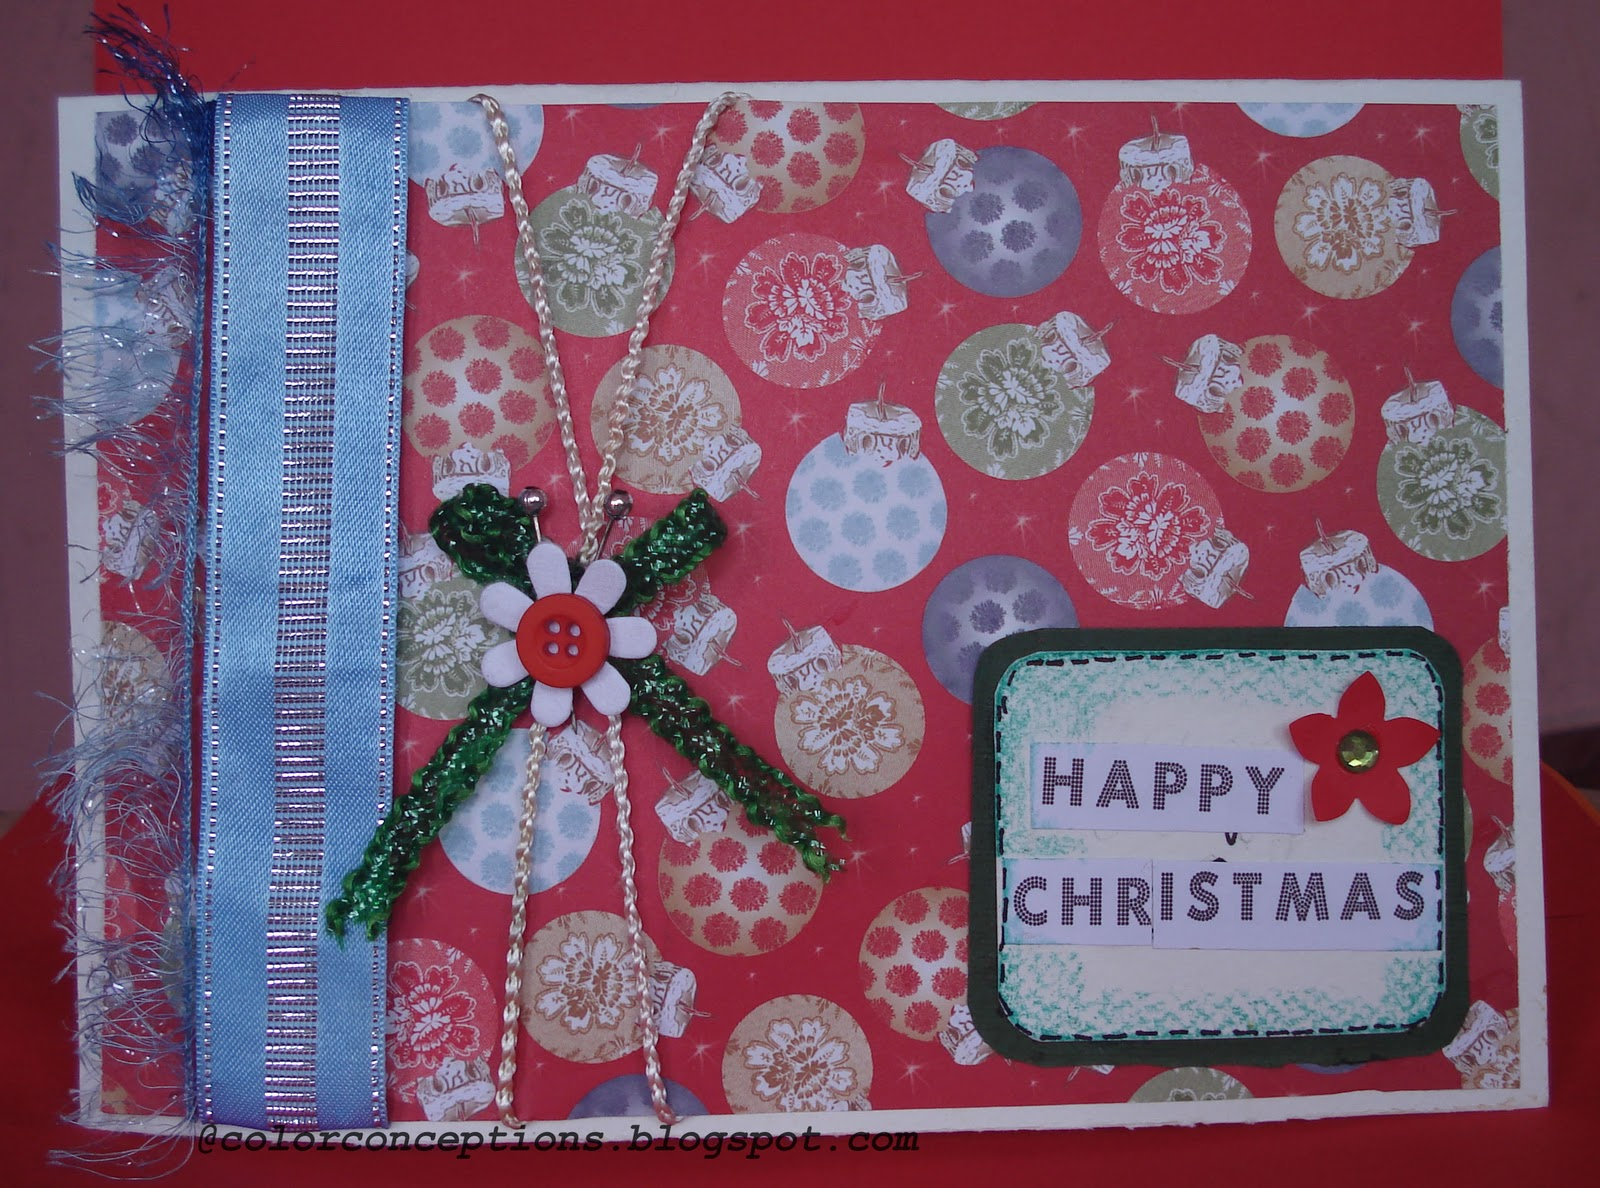 Knitting Patterns For Christmas Cards : Pattern Christmas Card   Design Patterns